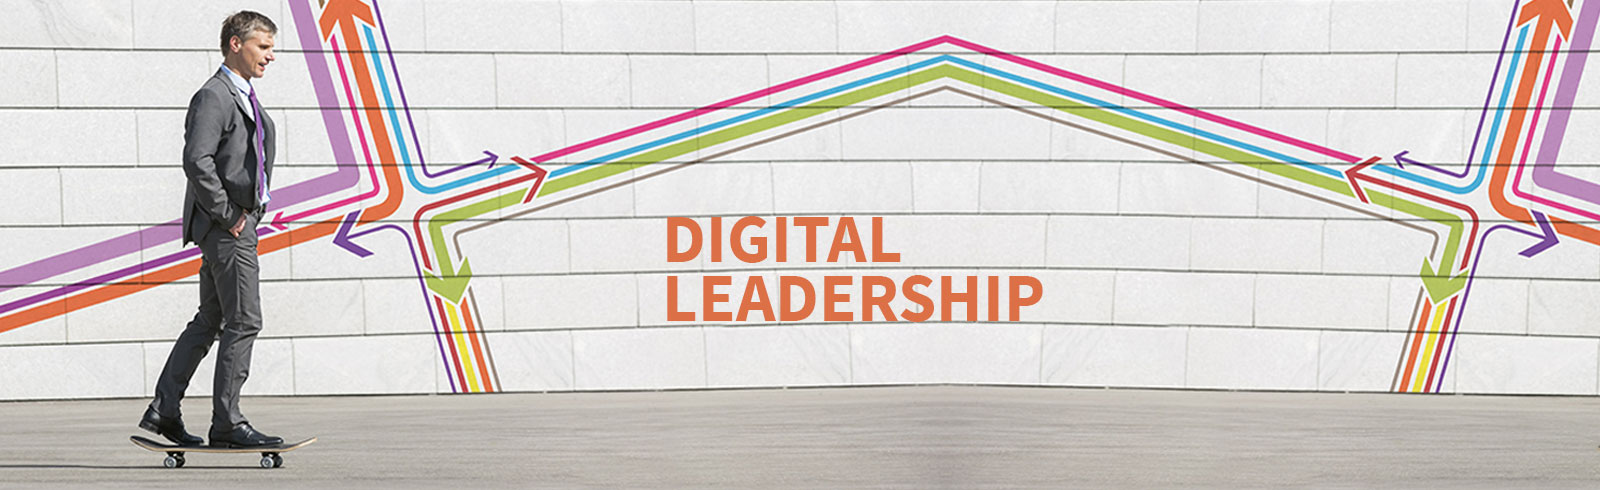 digital leadrship